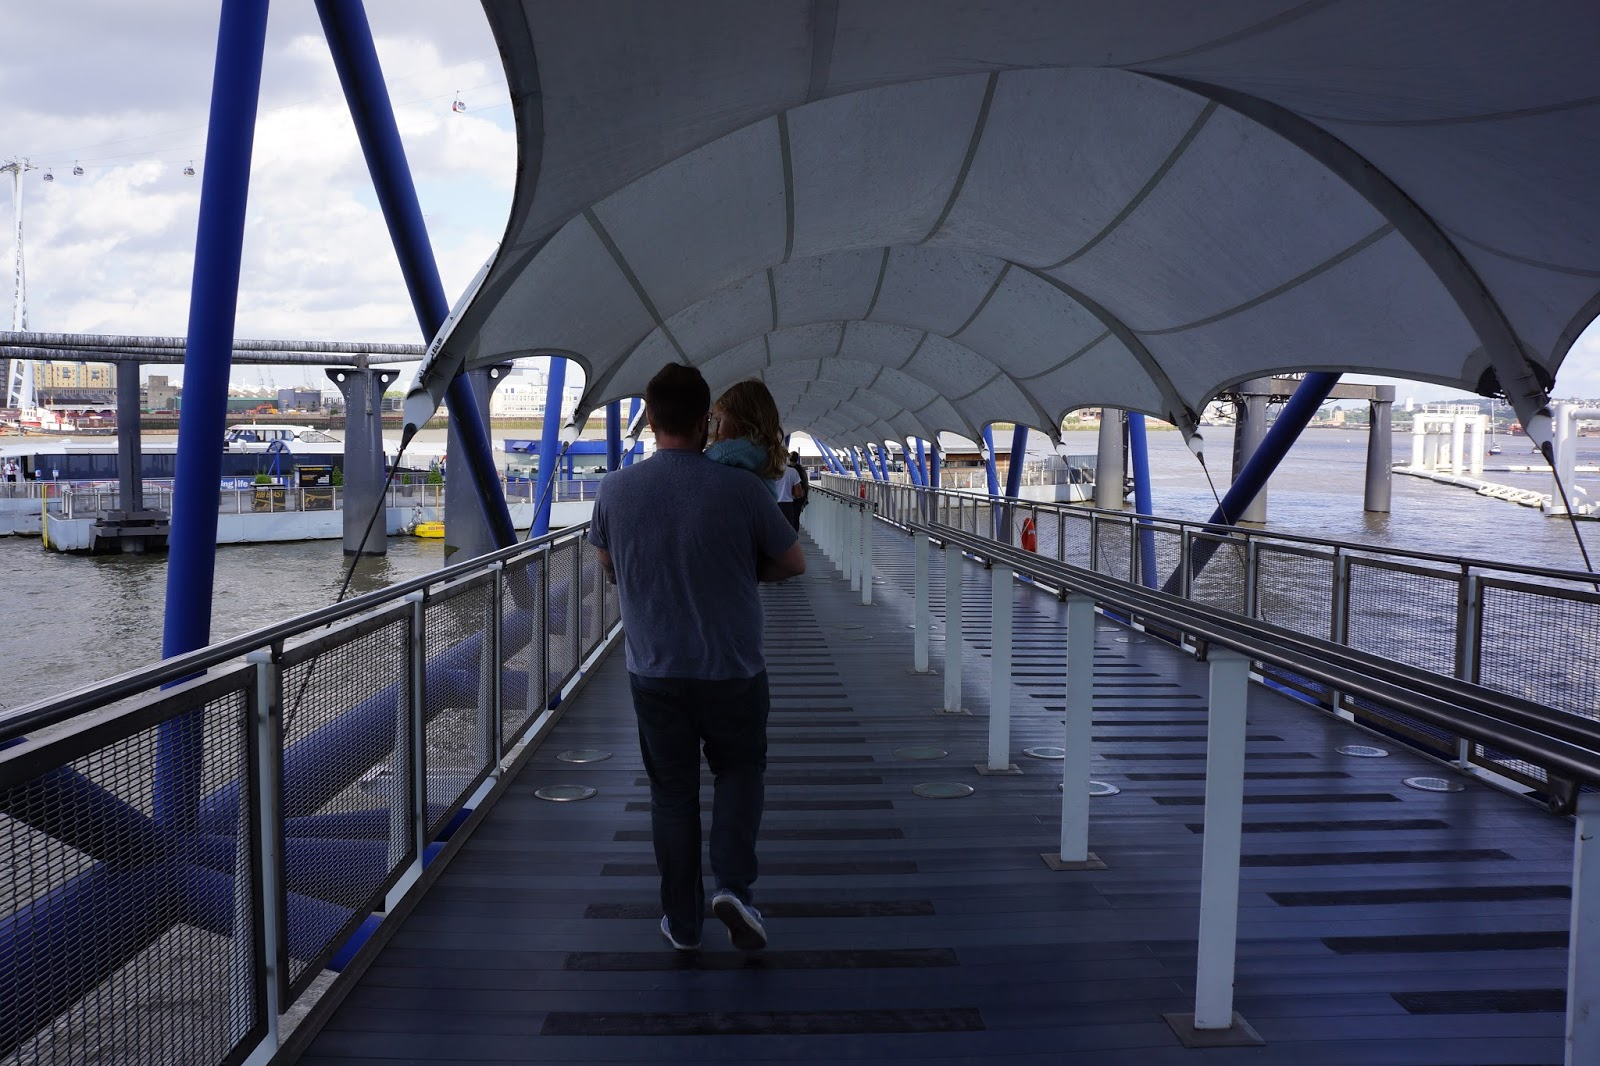 father and child walking at the mbna thames clippers pier at the o2